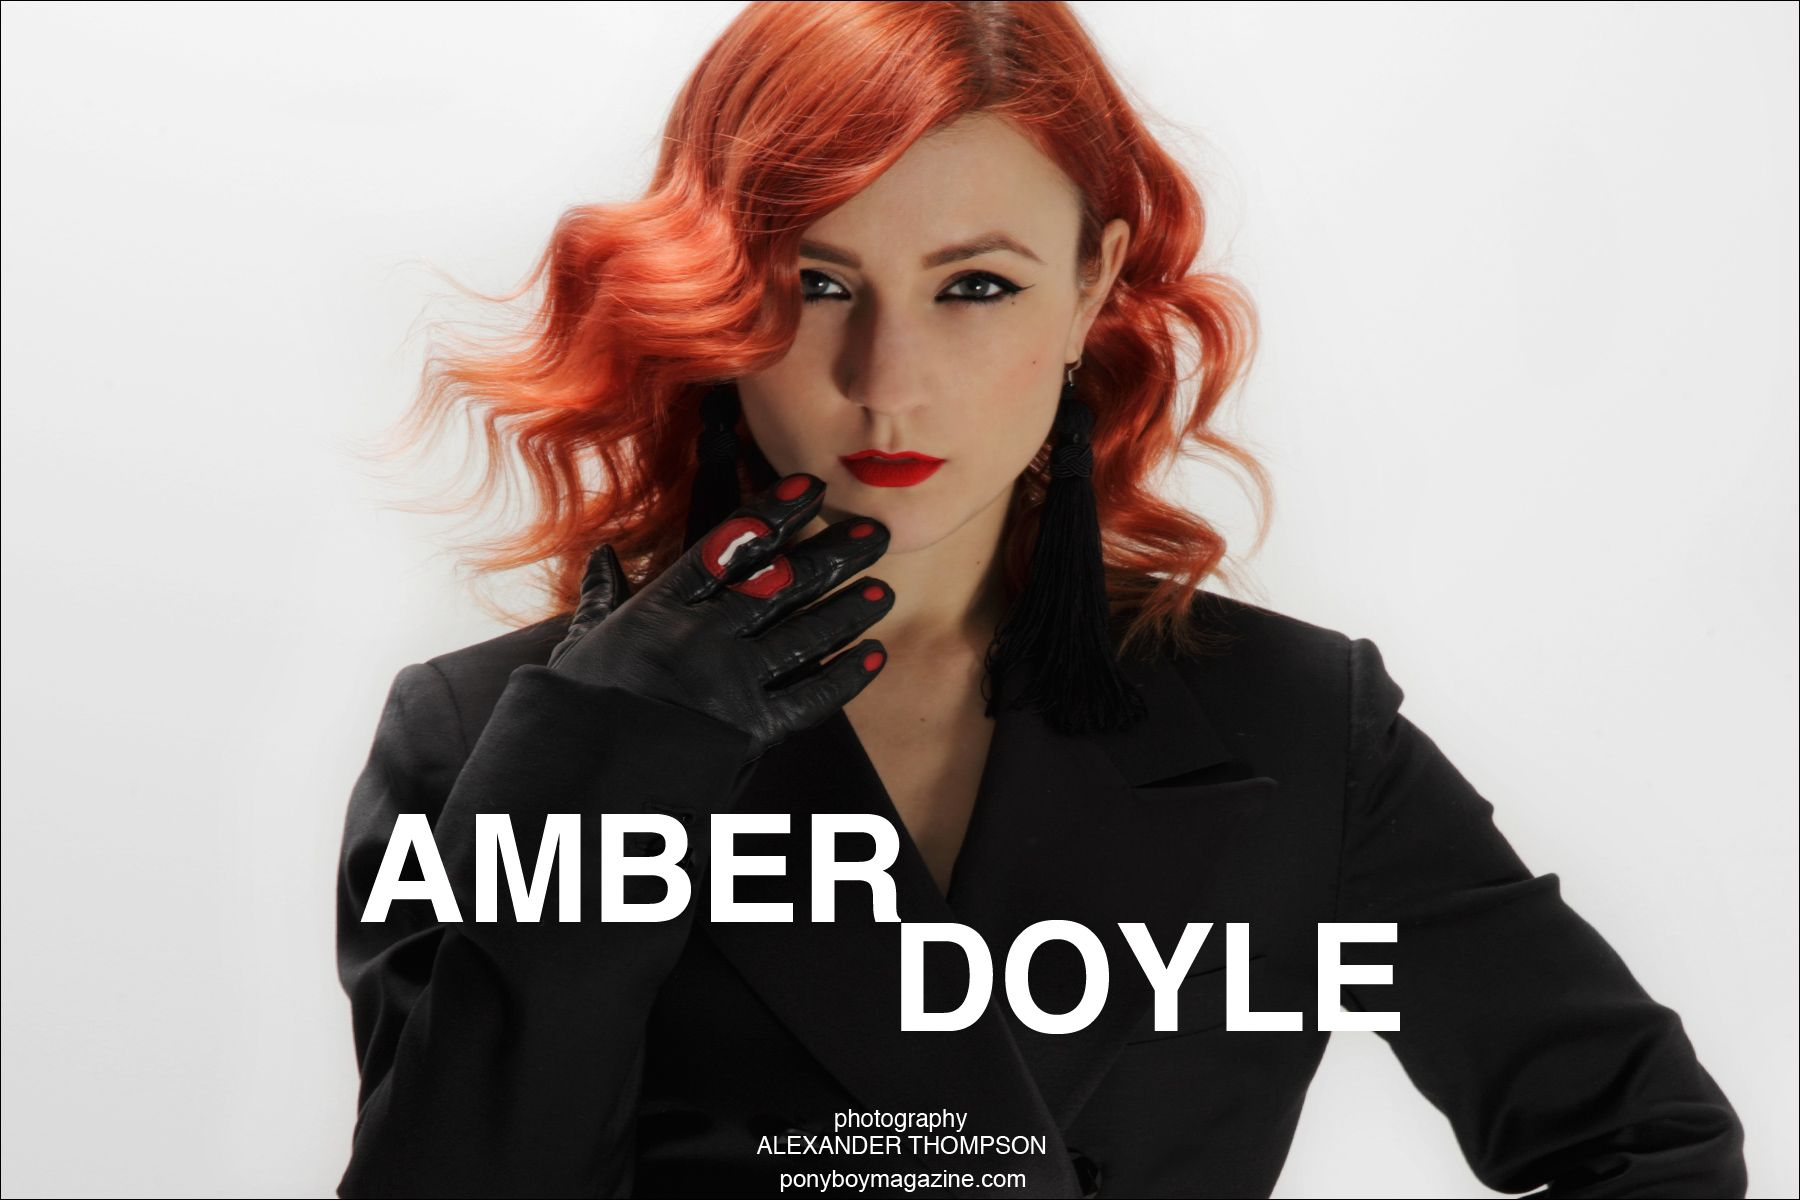 Opening spread of Amber Doyle profile for Ponyboy Magazine, photographed by Alexander Thompson.